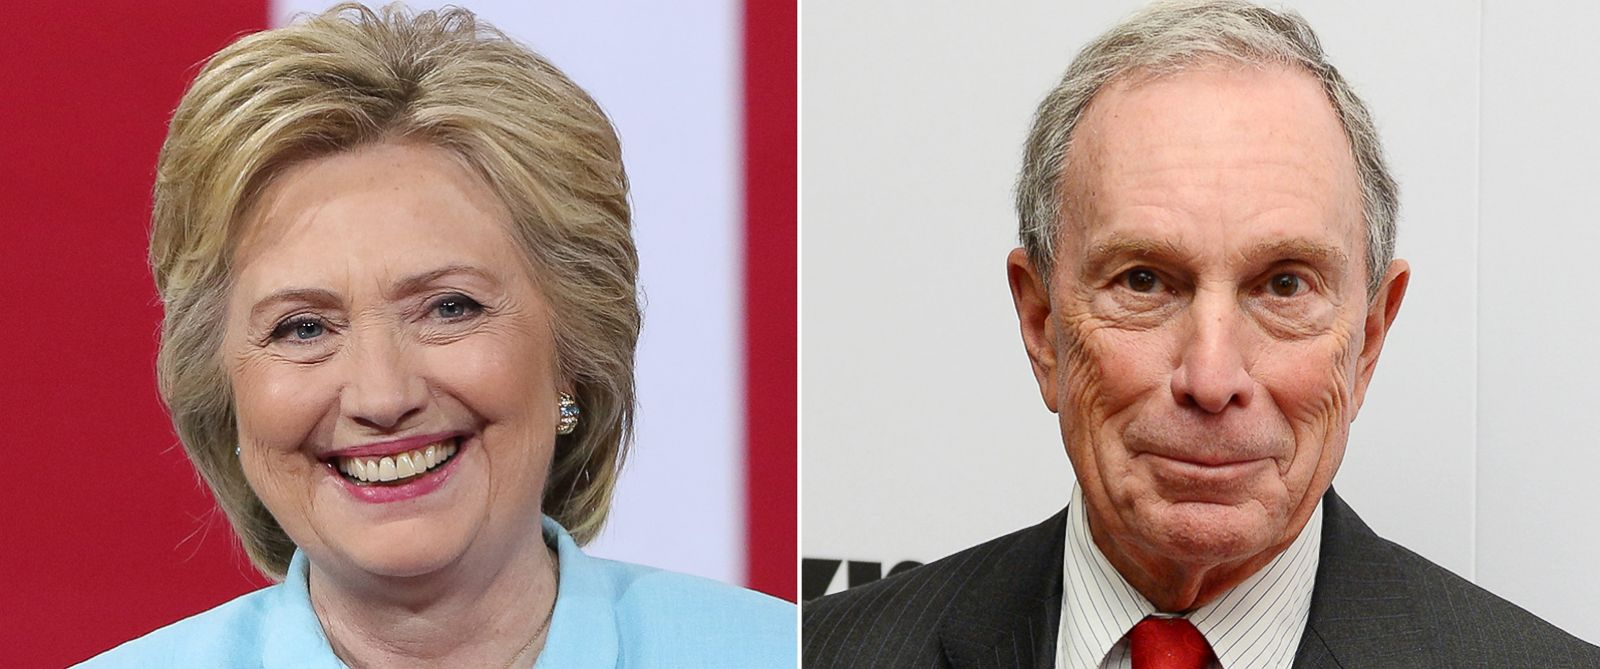 PHOTO: (L-R) Pictured are Hillary Clinton in Miami, Florida, July 23, 2016 and Michael Bloomberg in New York City, Dec. 17, 2015.